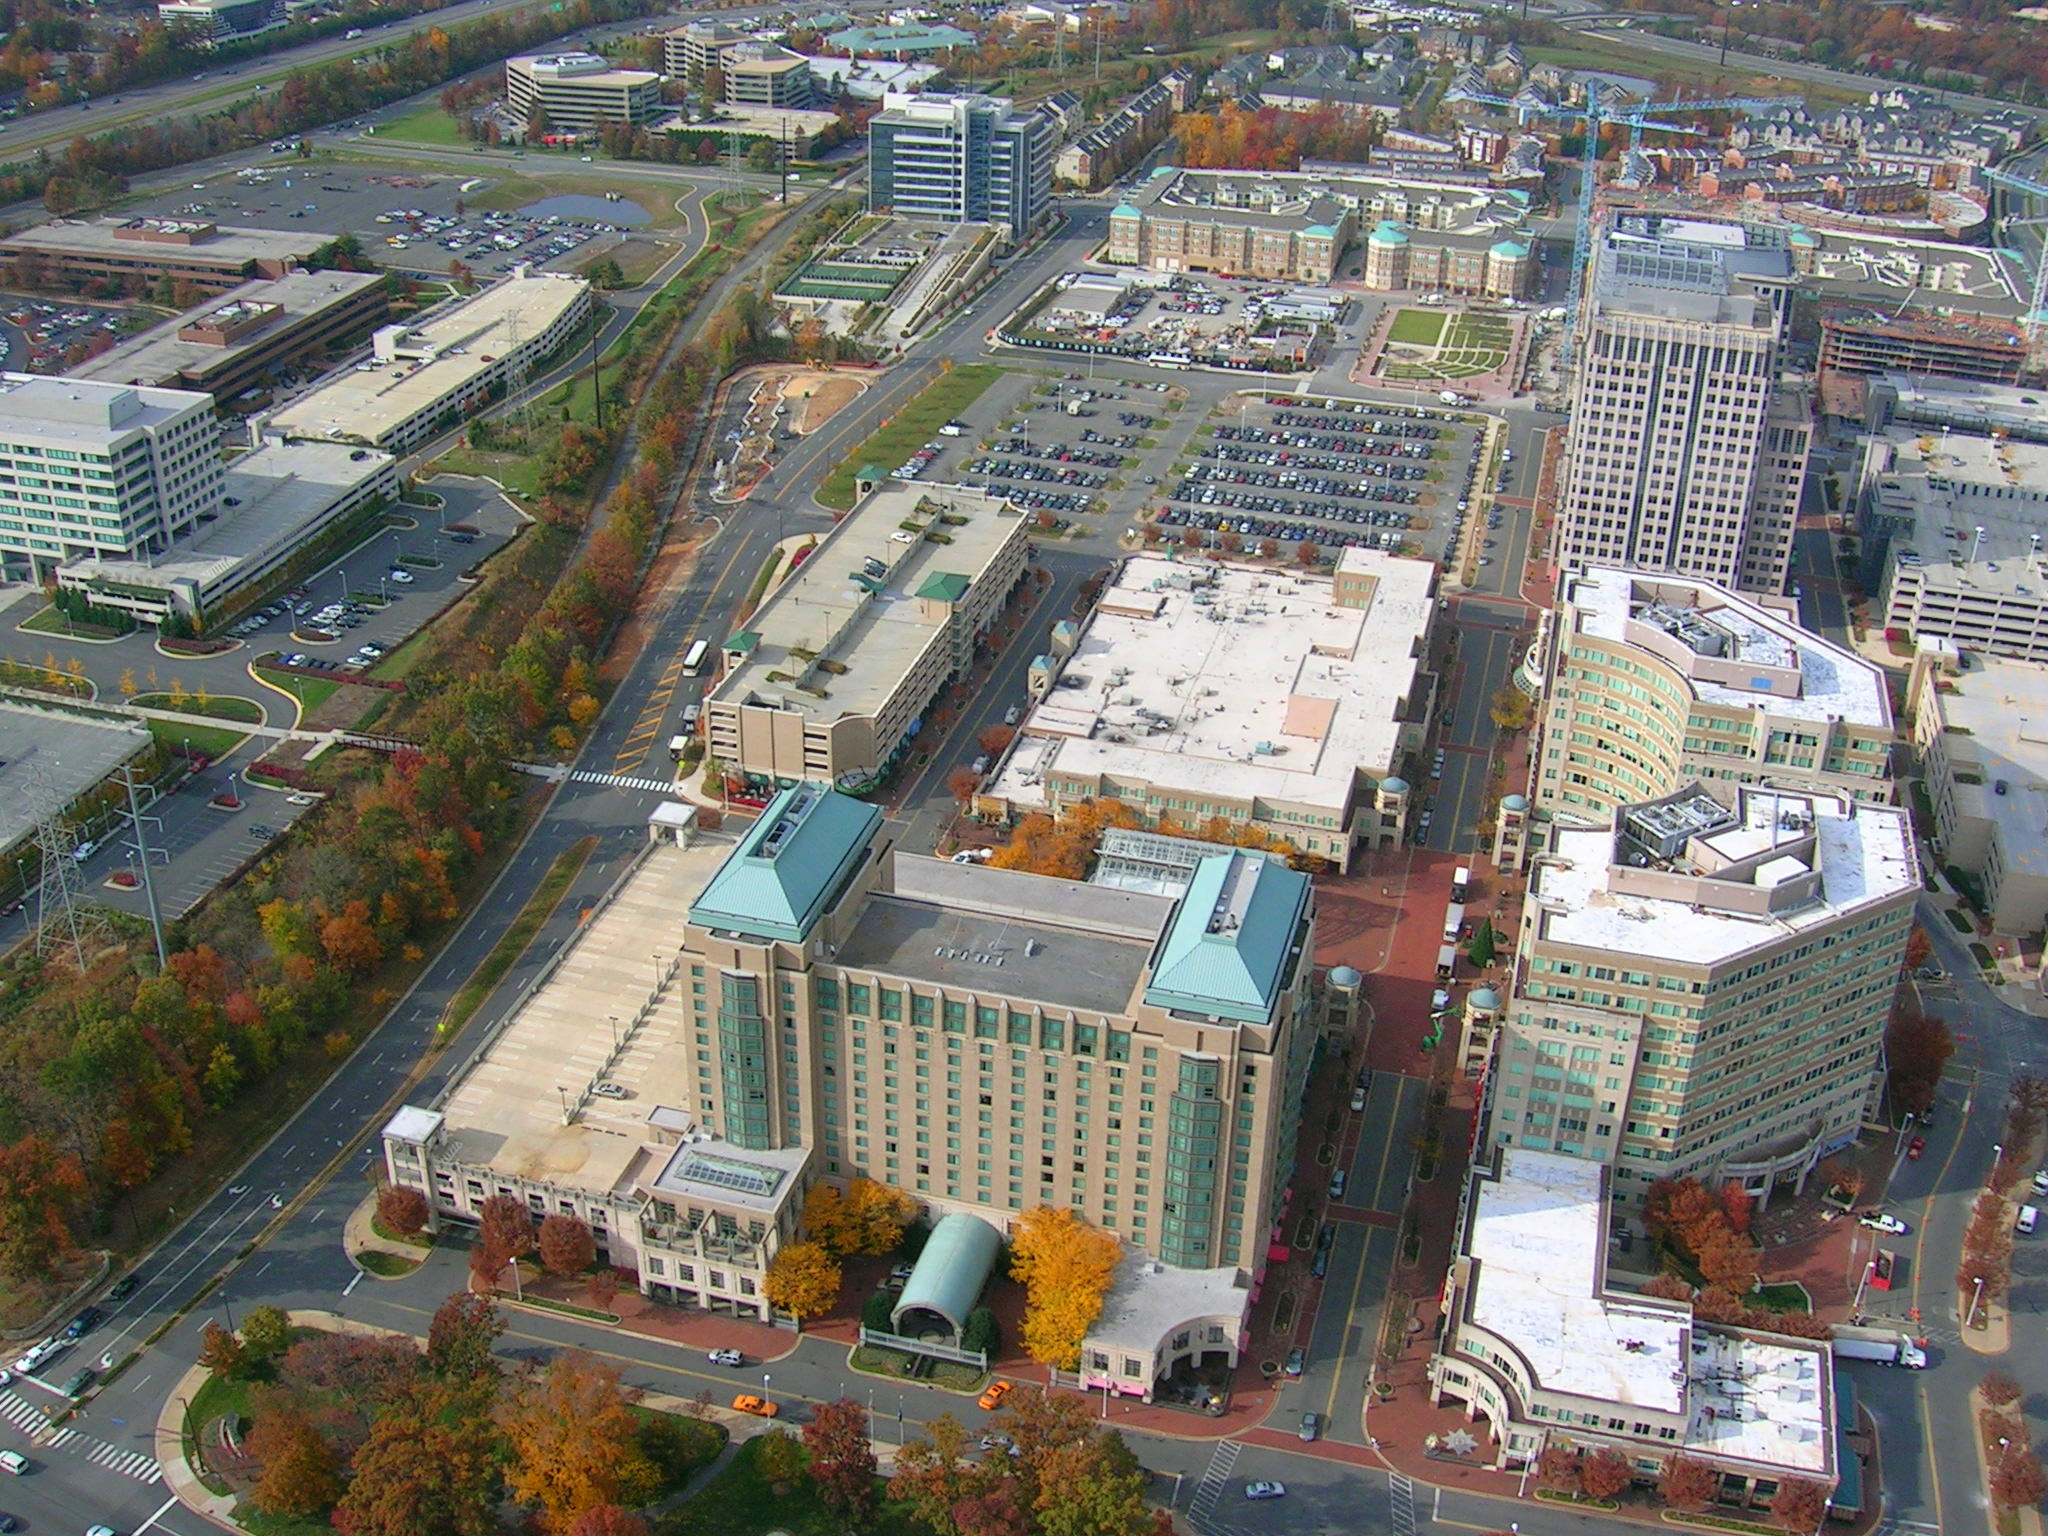 Reston Town Center    Description: A large mixed-use development.  Client(s): Westerra Reston, Boston Properties, Trammell Crow Residential, SallieMae, Equity Office Partners  Location: Fairfax County, Virginia  Size: 84 acres